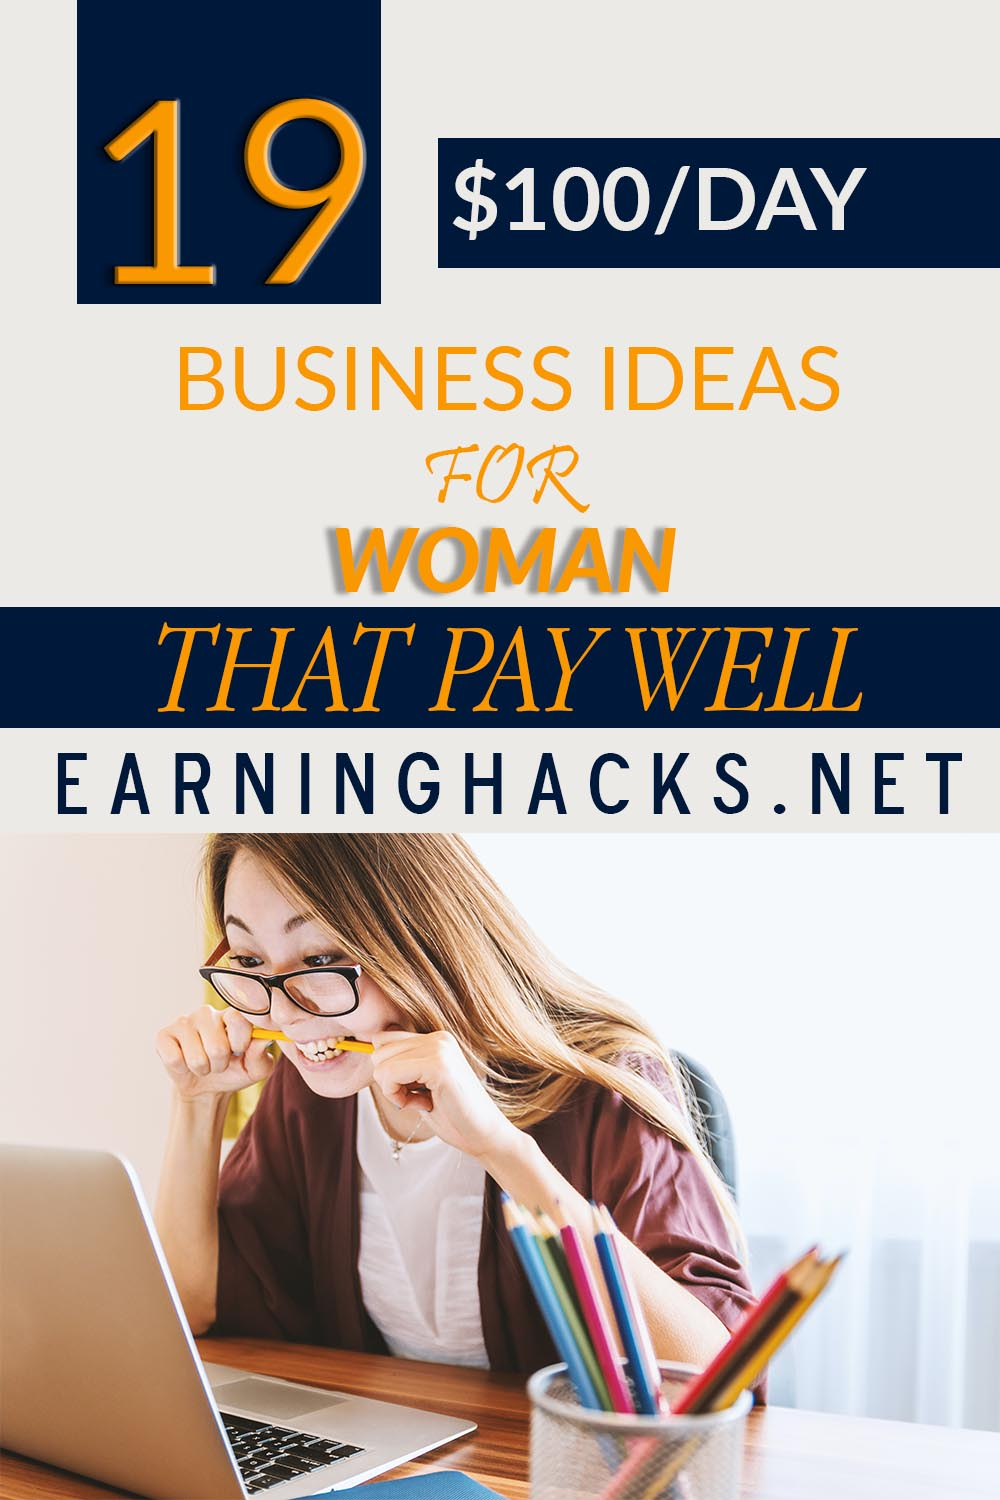 19 Business Ideas For Woman That Pay Well